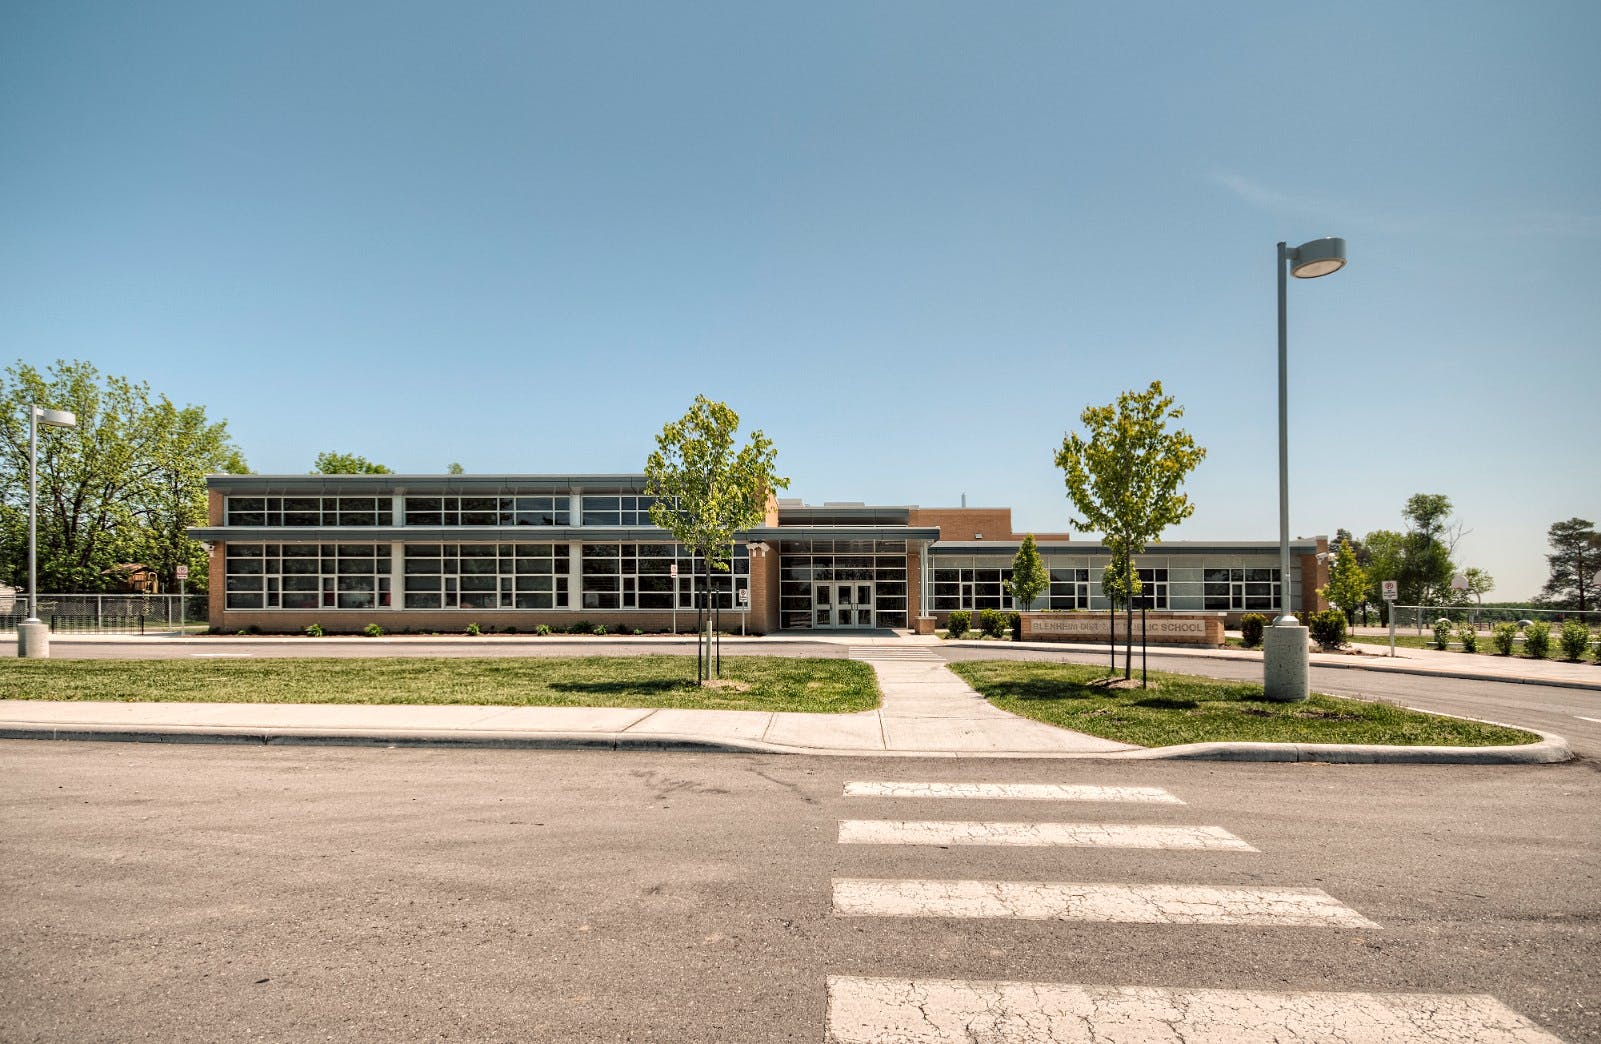 Architectural Photography of School in Drumbo Ontario